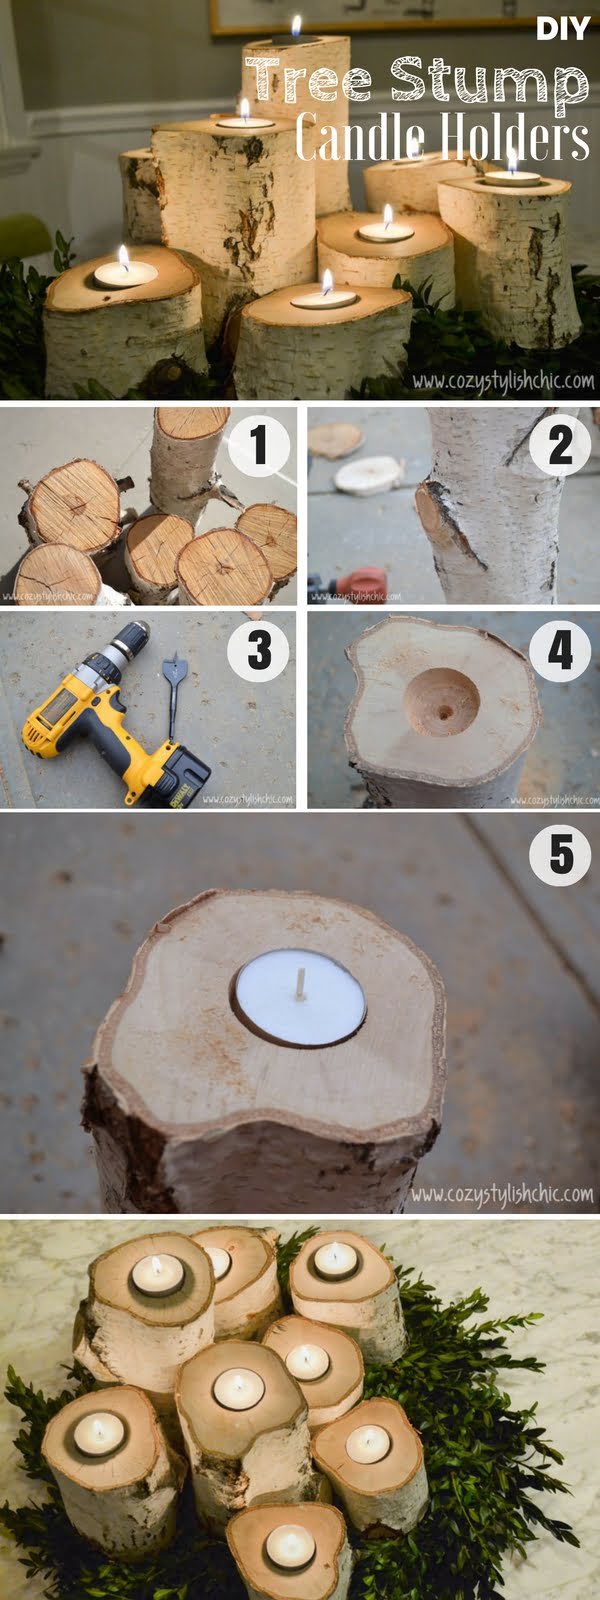 Brilliant rustic easy to make DIY Tree Stump Candle Holders for fall decor